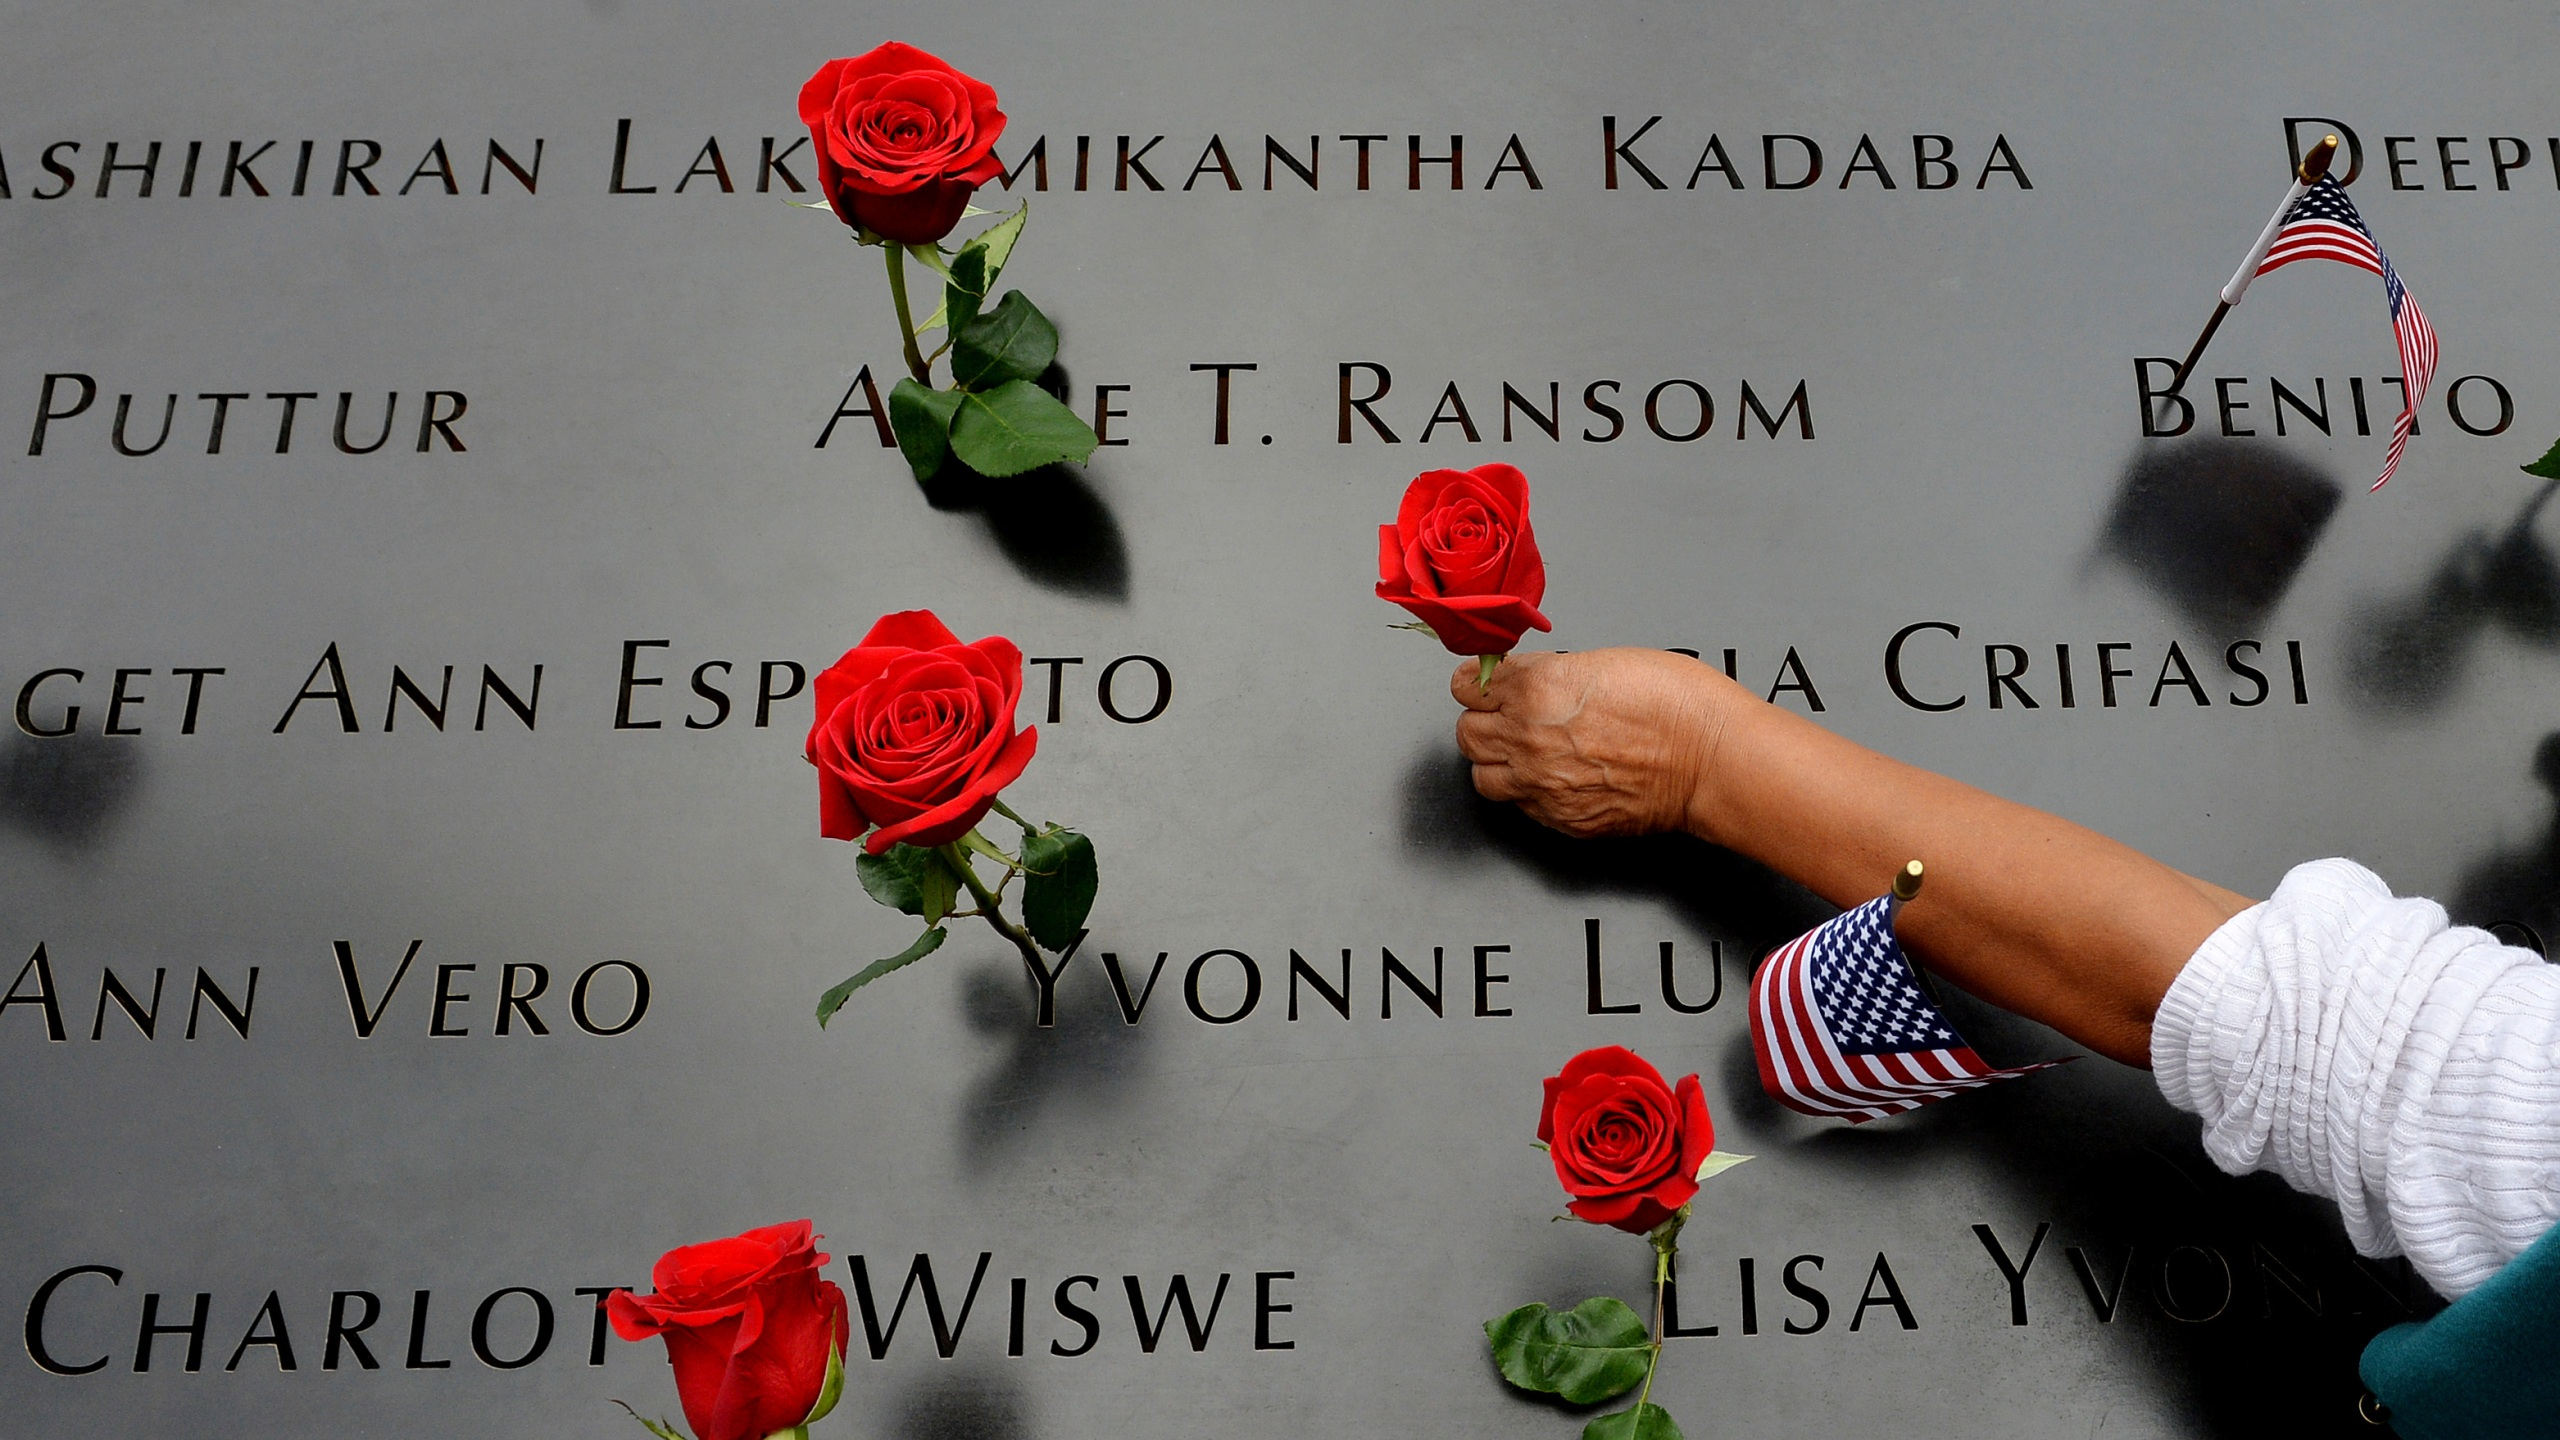 In this Sept. 11, 2014, photo, a woman places flowers in the inscribed names along the edge of the North Pool during memorial observances on the 13th anniversary of the Sept. 11, 2001, terror attacks on the World Trade Center in New York. (AP Photo/Justin Lane, Pool, File)